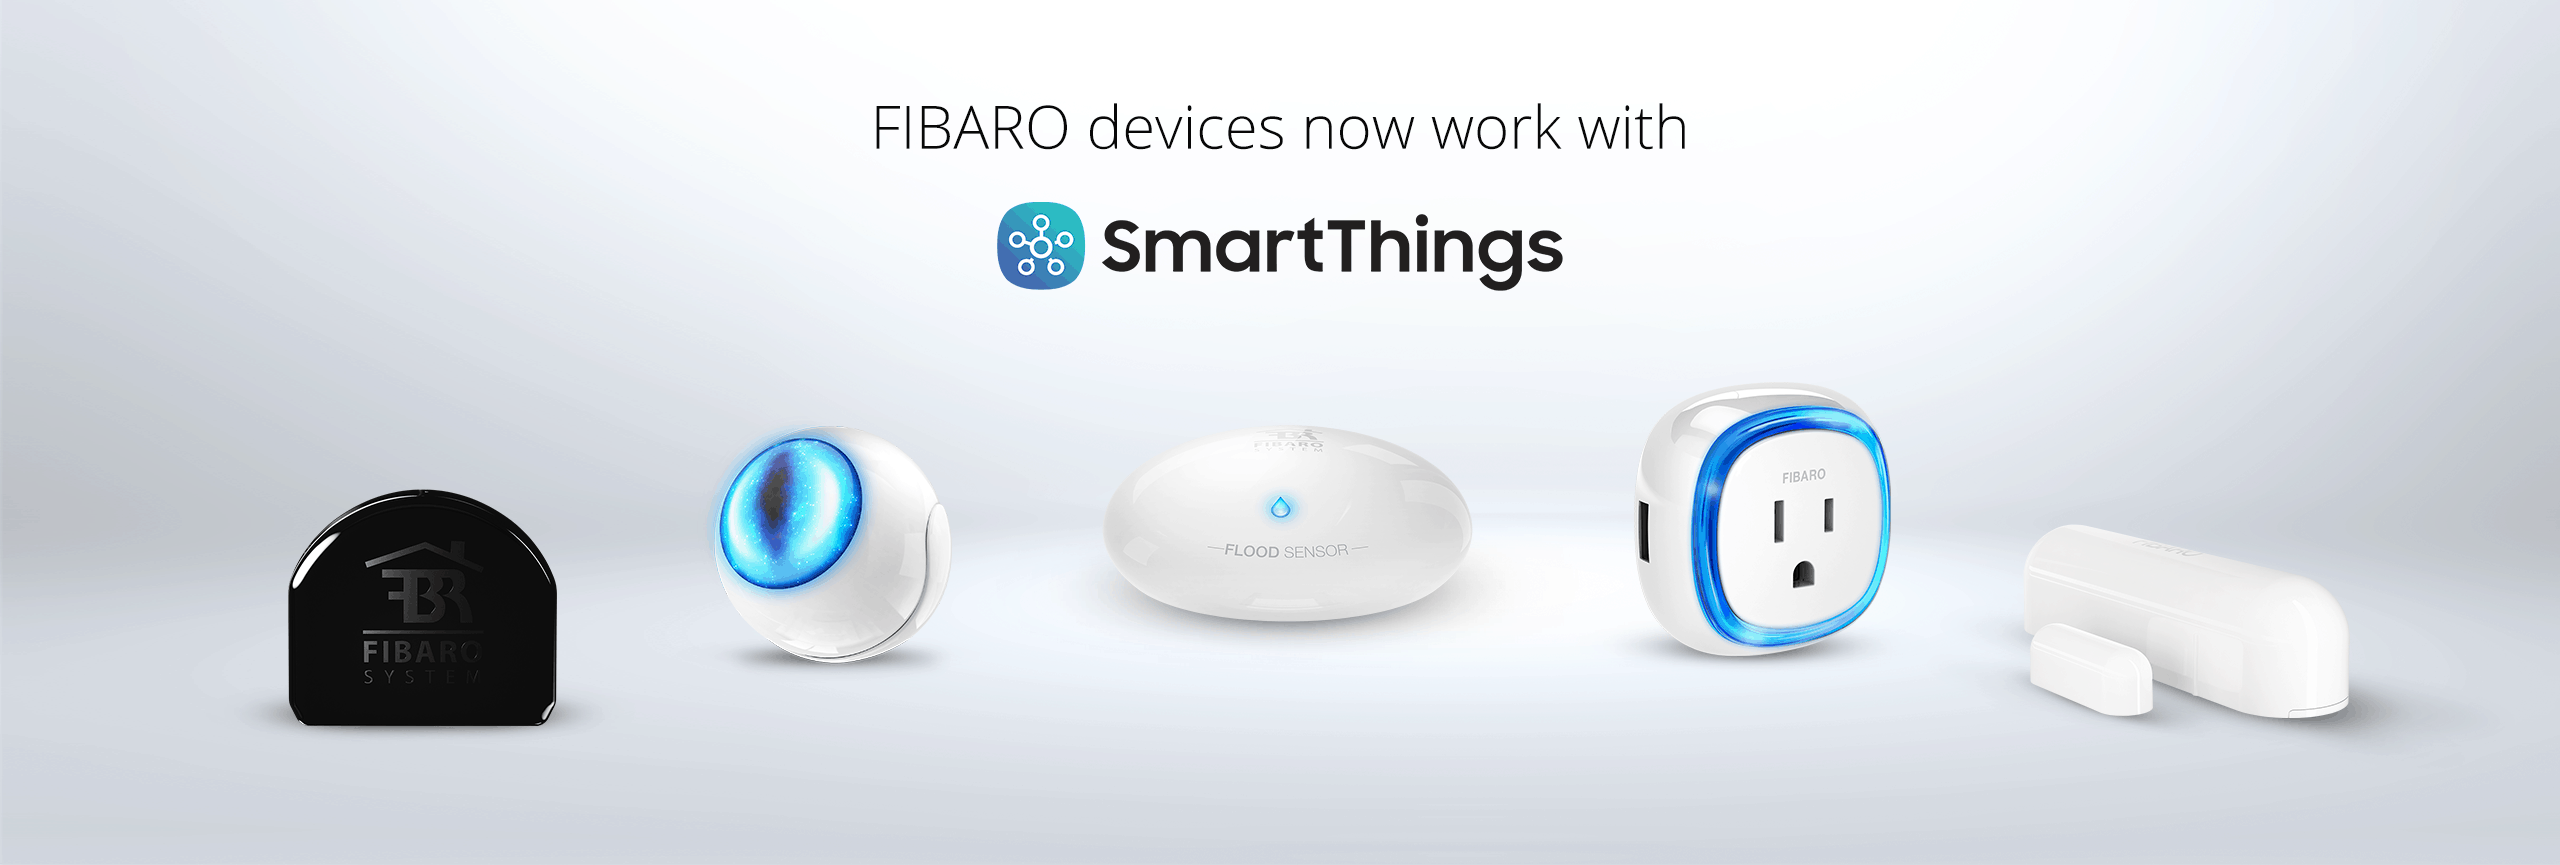 Fibaro and Samsung SmartThings now play nice together